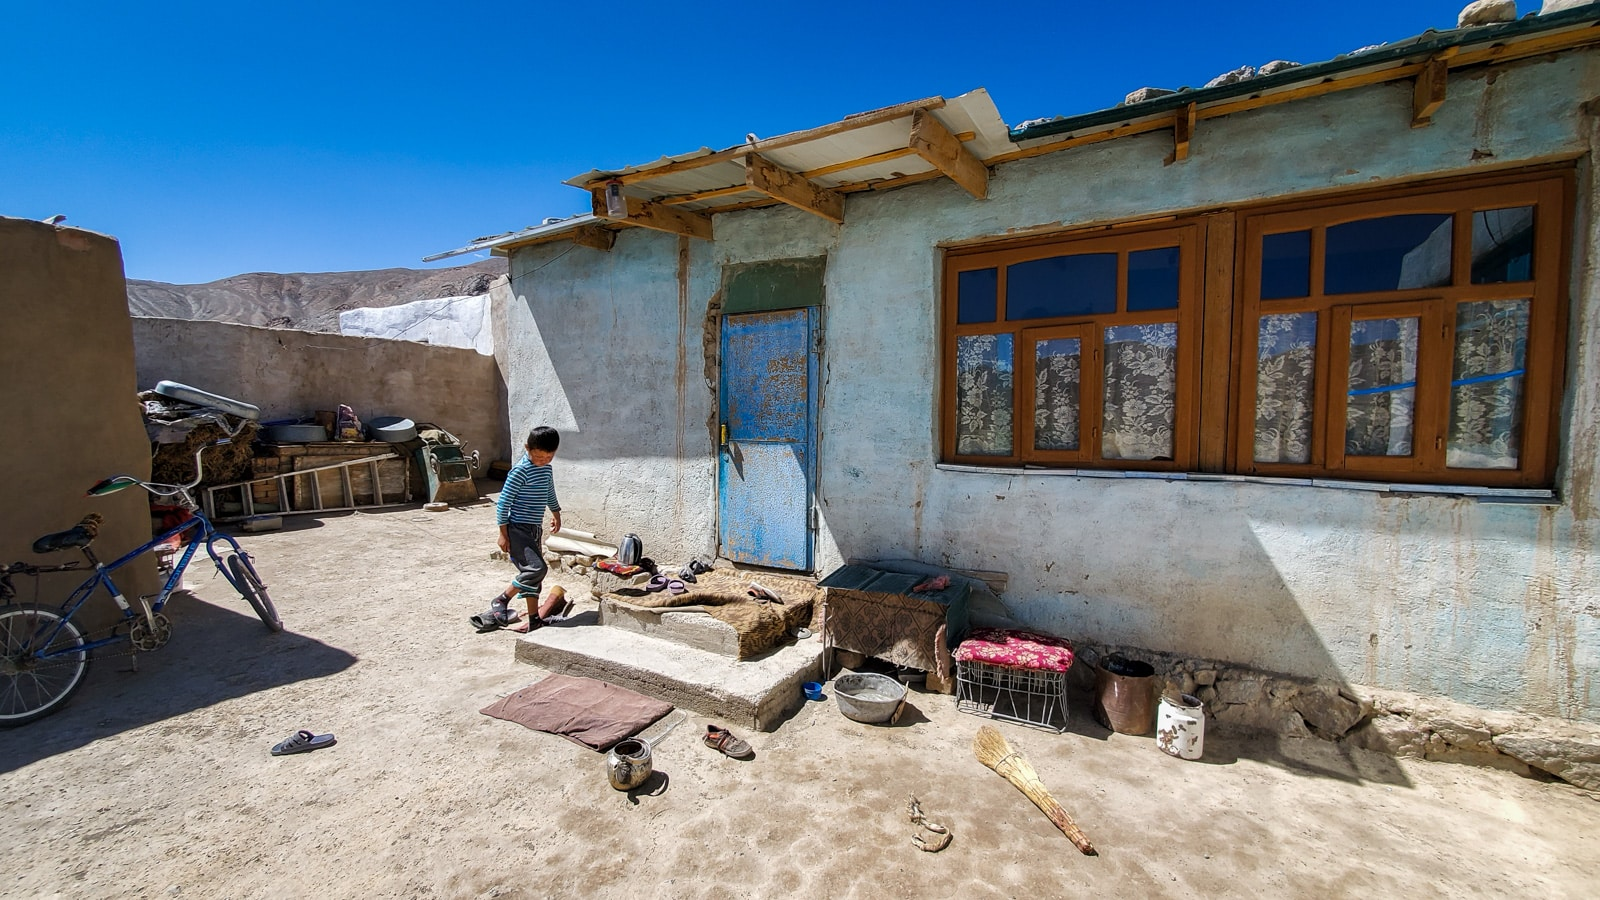 Boy outside his home in Murghab, Tajikistan